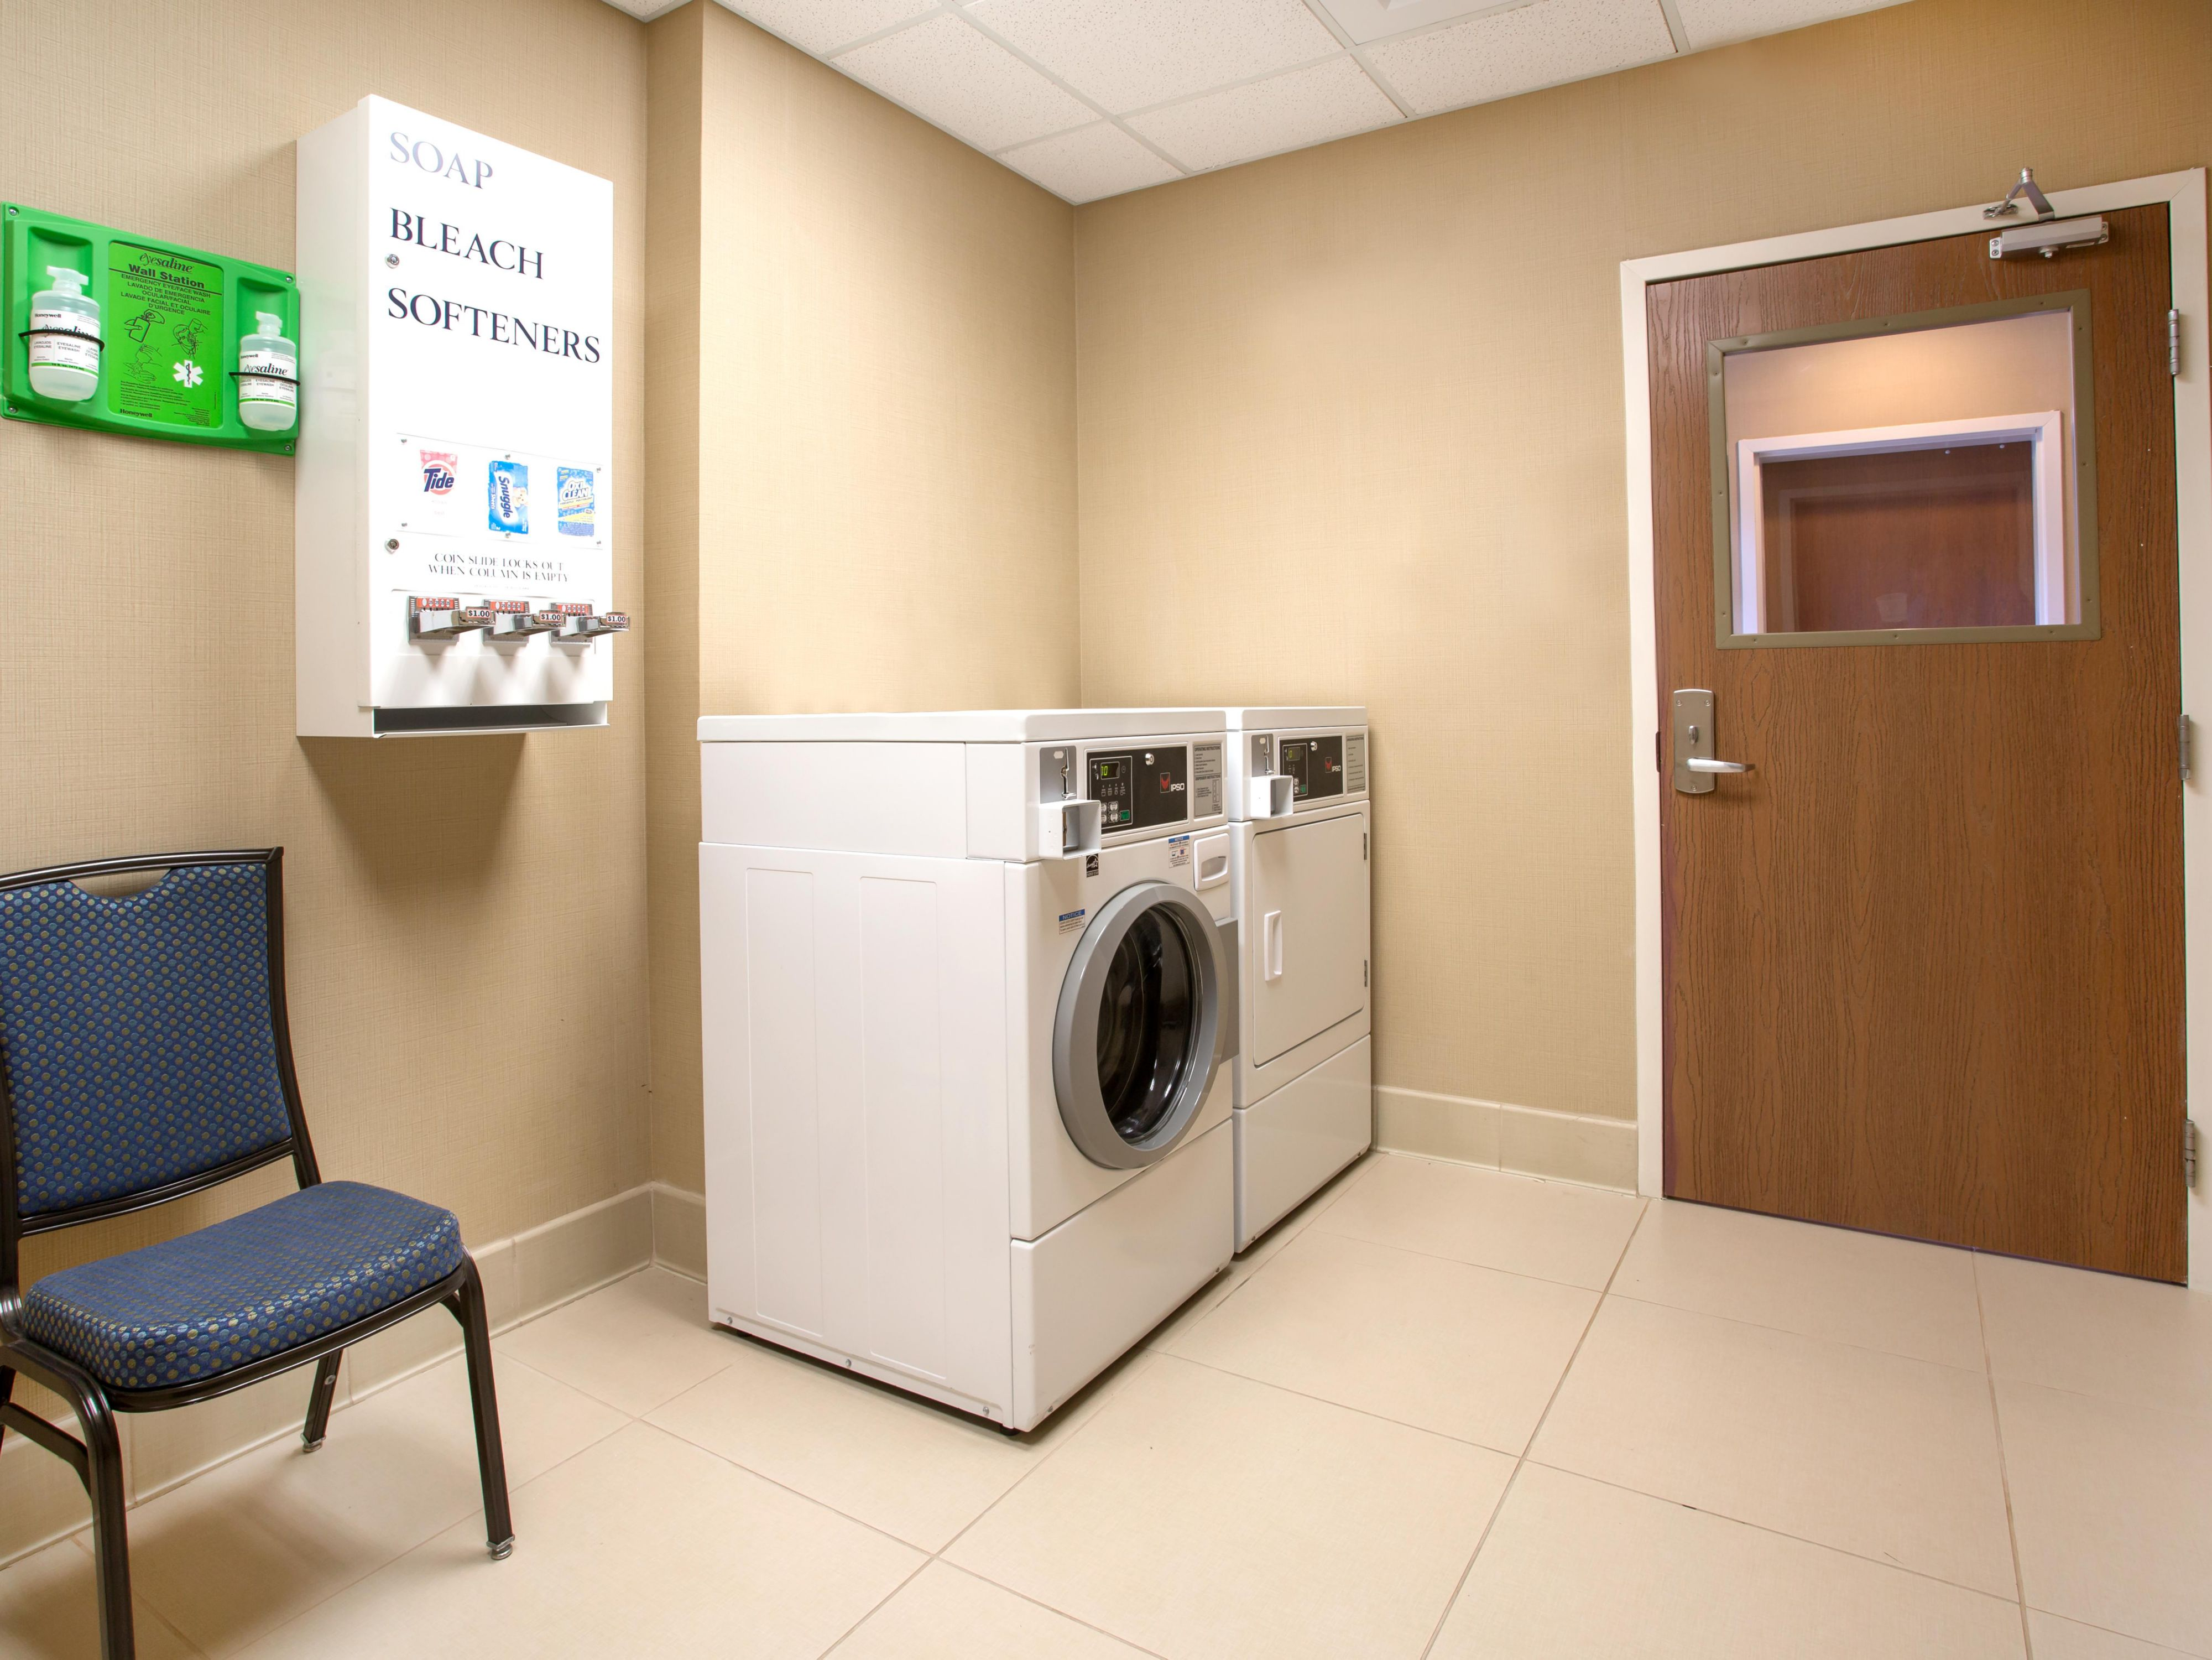 Our Laundry Room is available for your convenience